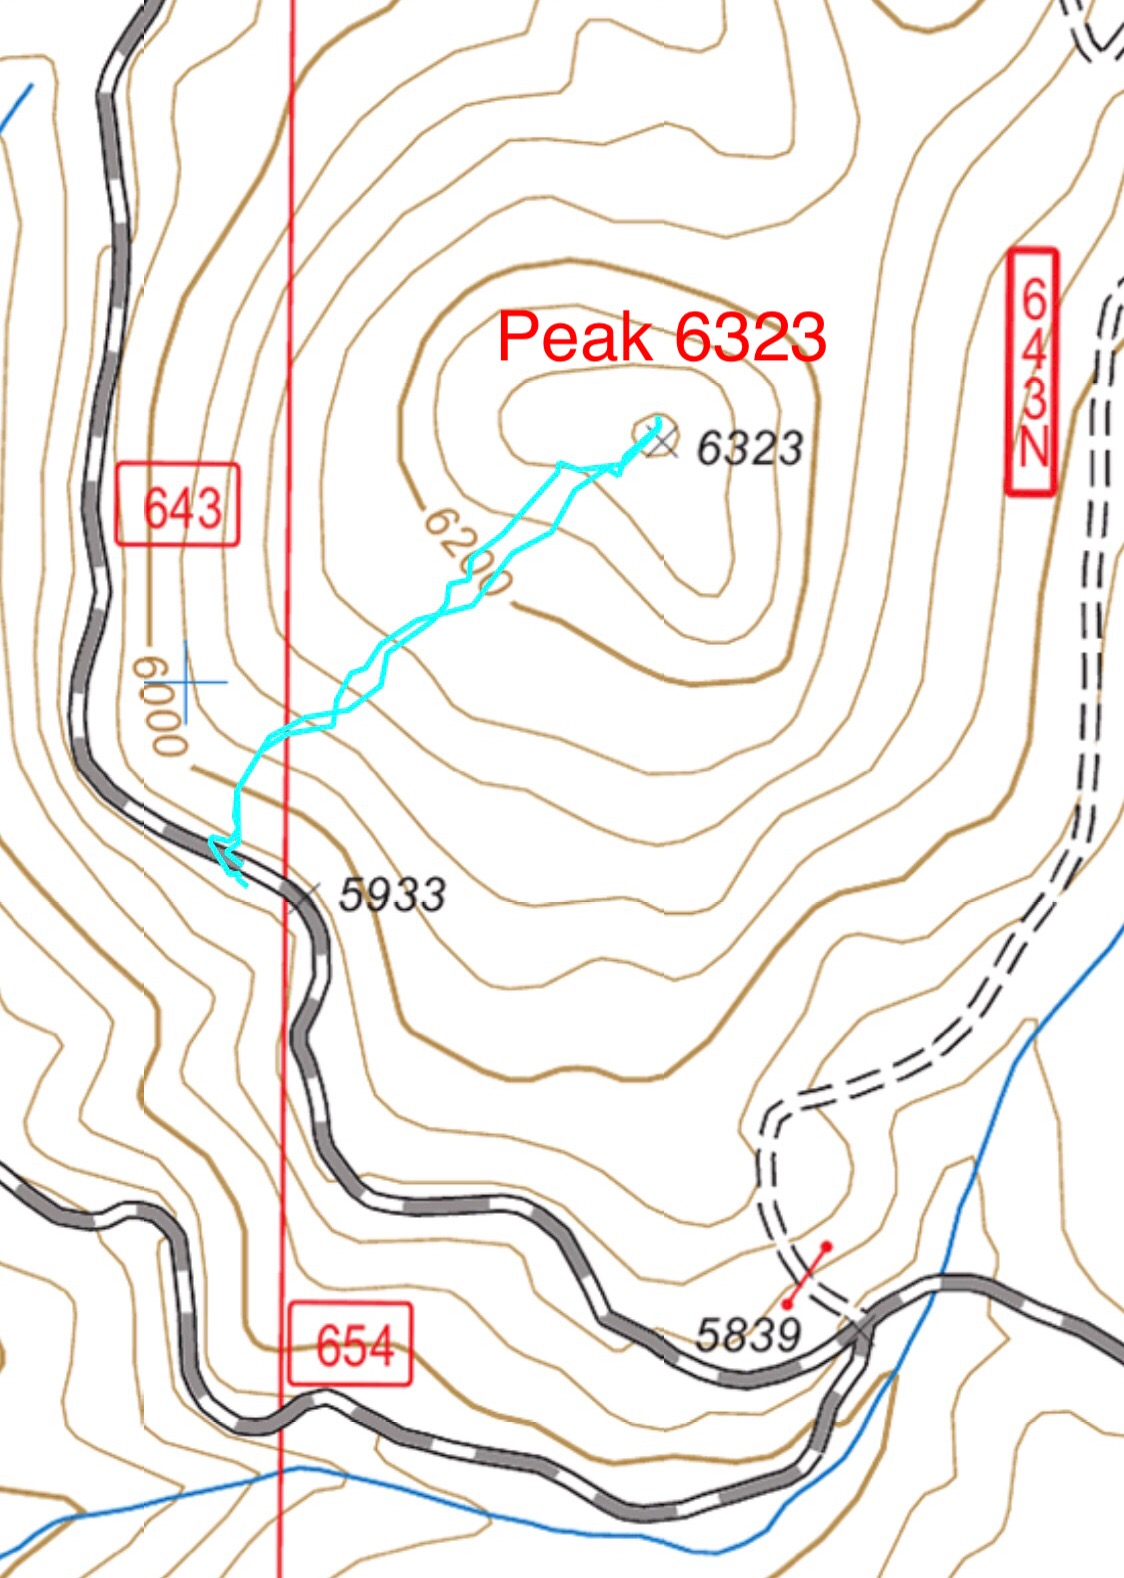 My GPS track. This climb covered 0.7 miles round trip with 339 feet of elevation gain.